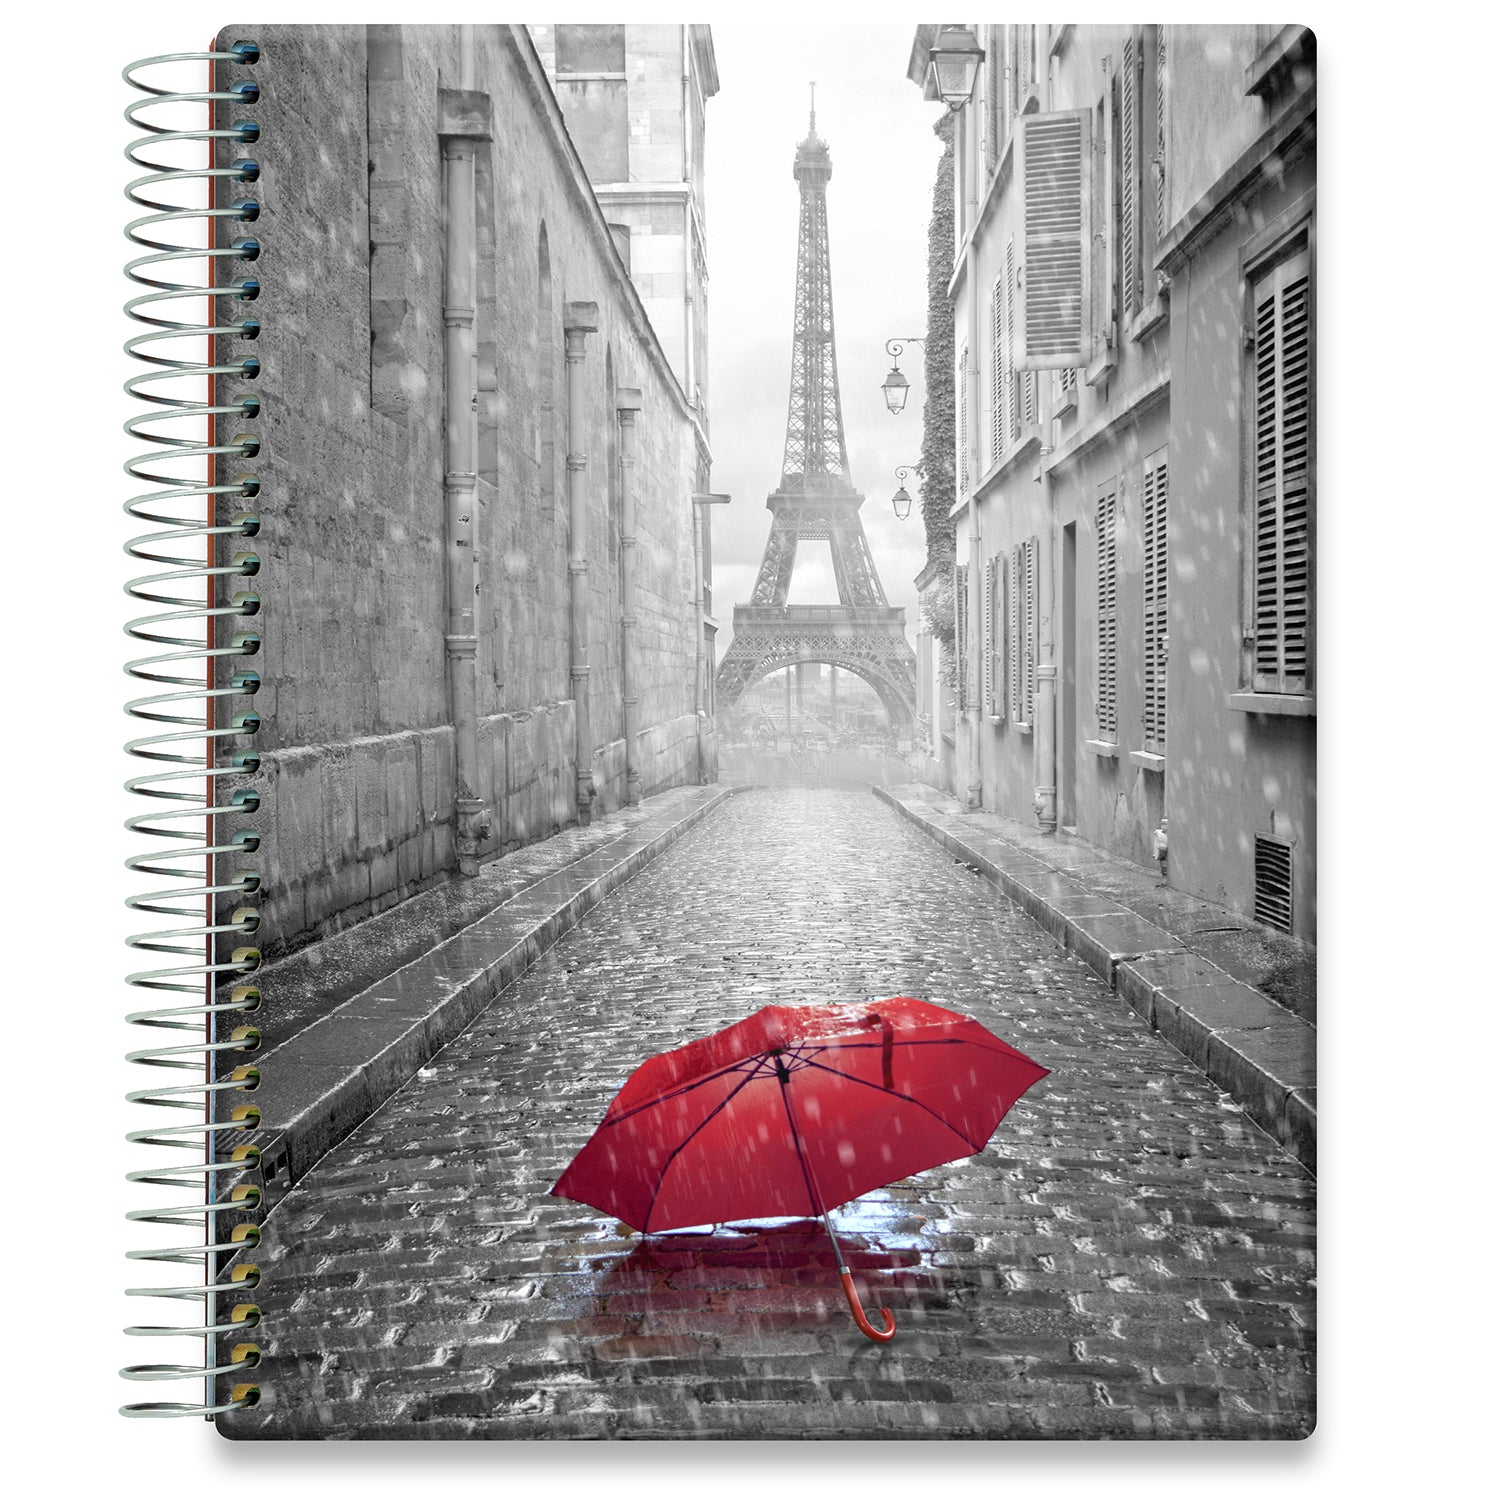 Planner 2021-2022 • April 2021 to June 2022 Academic Year • 8.5x11 Hardcover • Paris